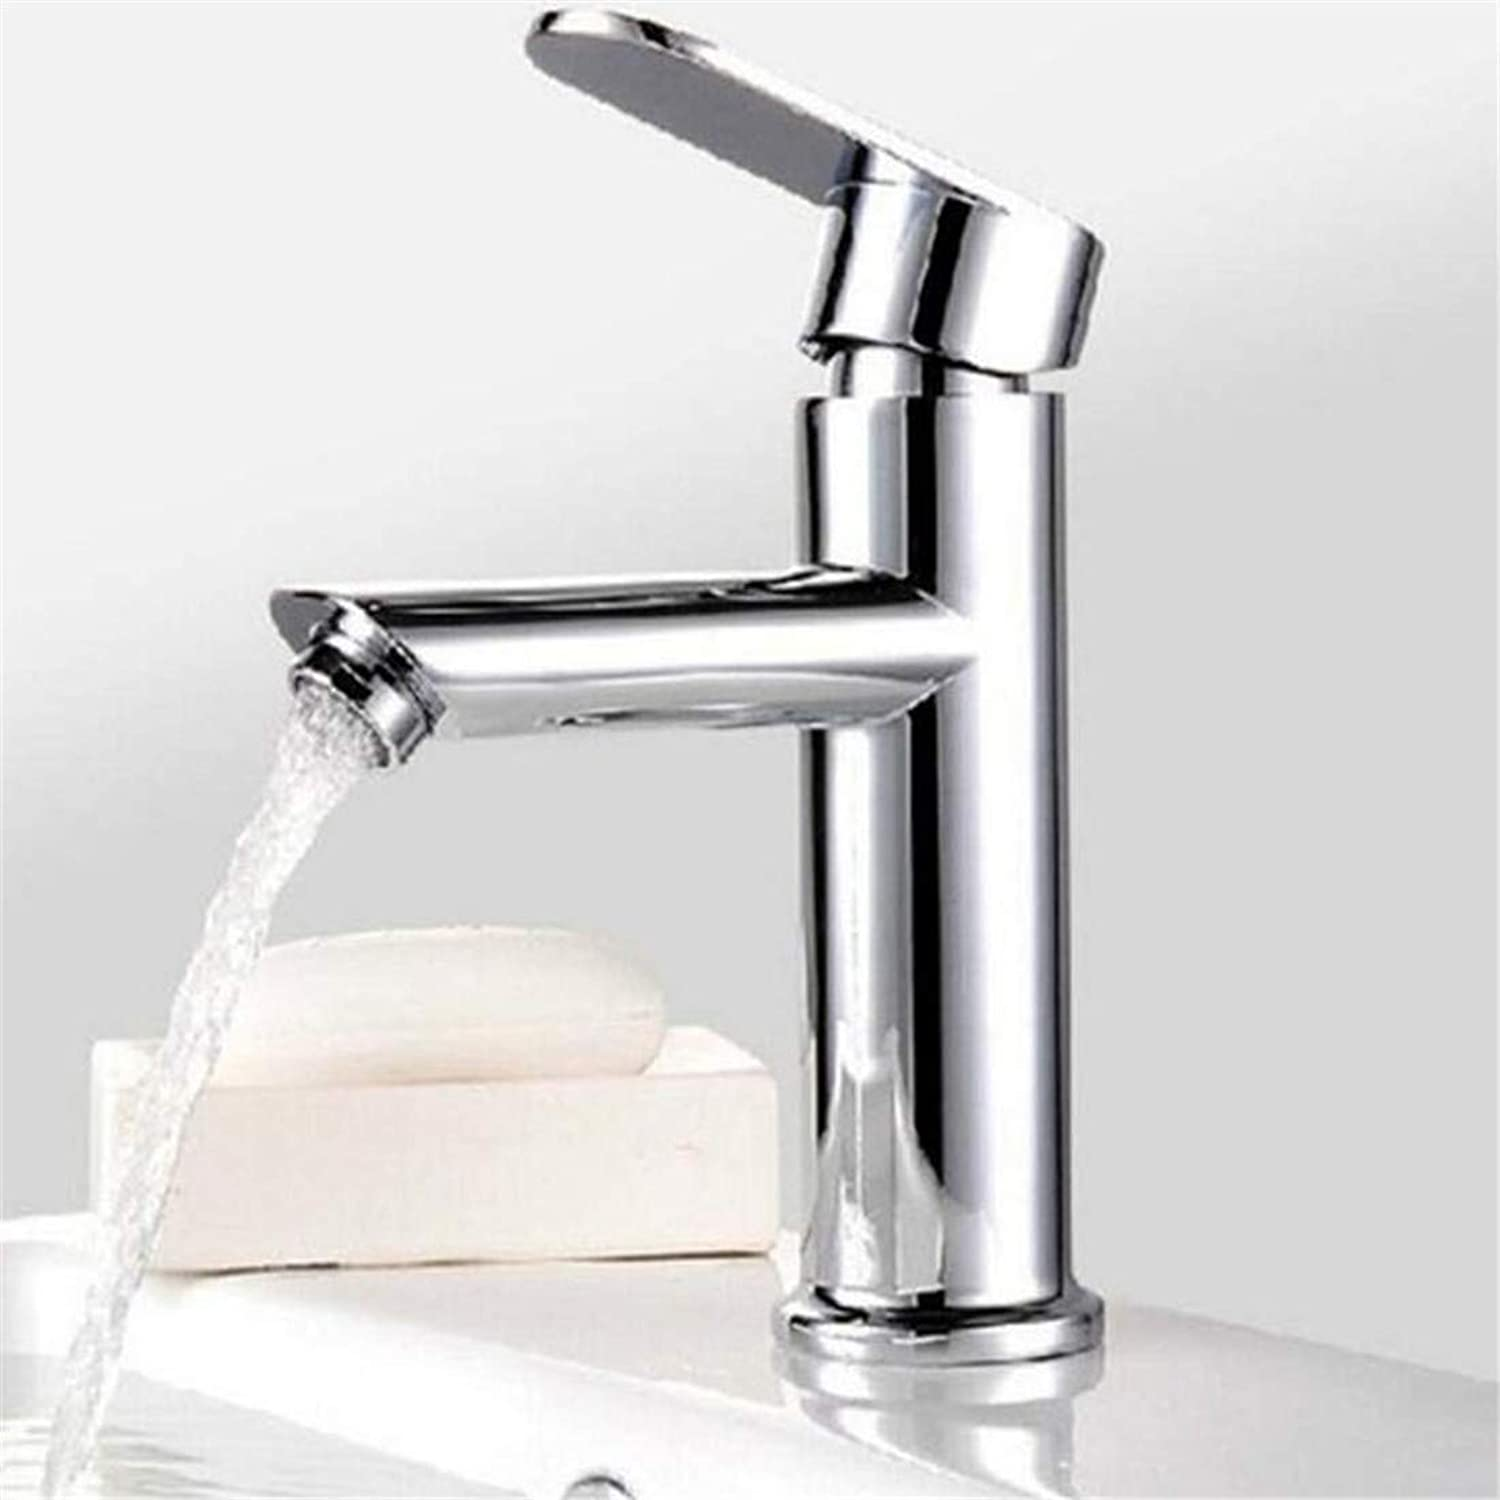 Faucet Vintage Plated Deck Mounted Faucet Faucet Mixer Deck Mounted Hot and Cold Water Mix Faucets Home Kitchen Bathroom Basin Sink Water Faucet